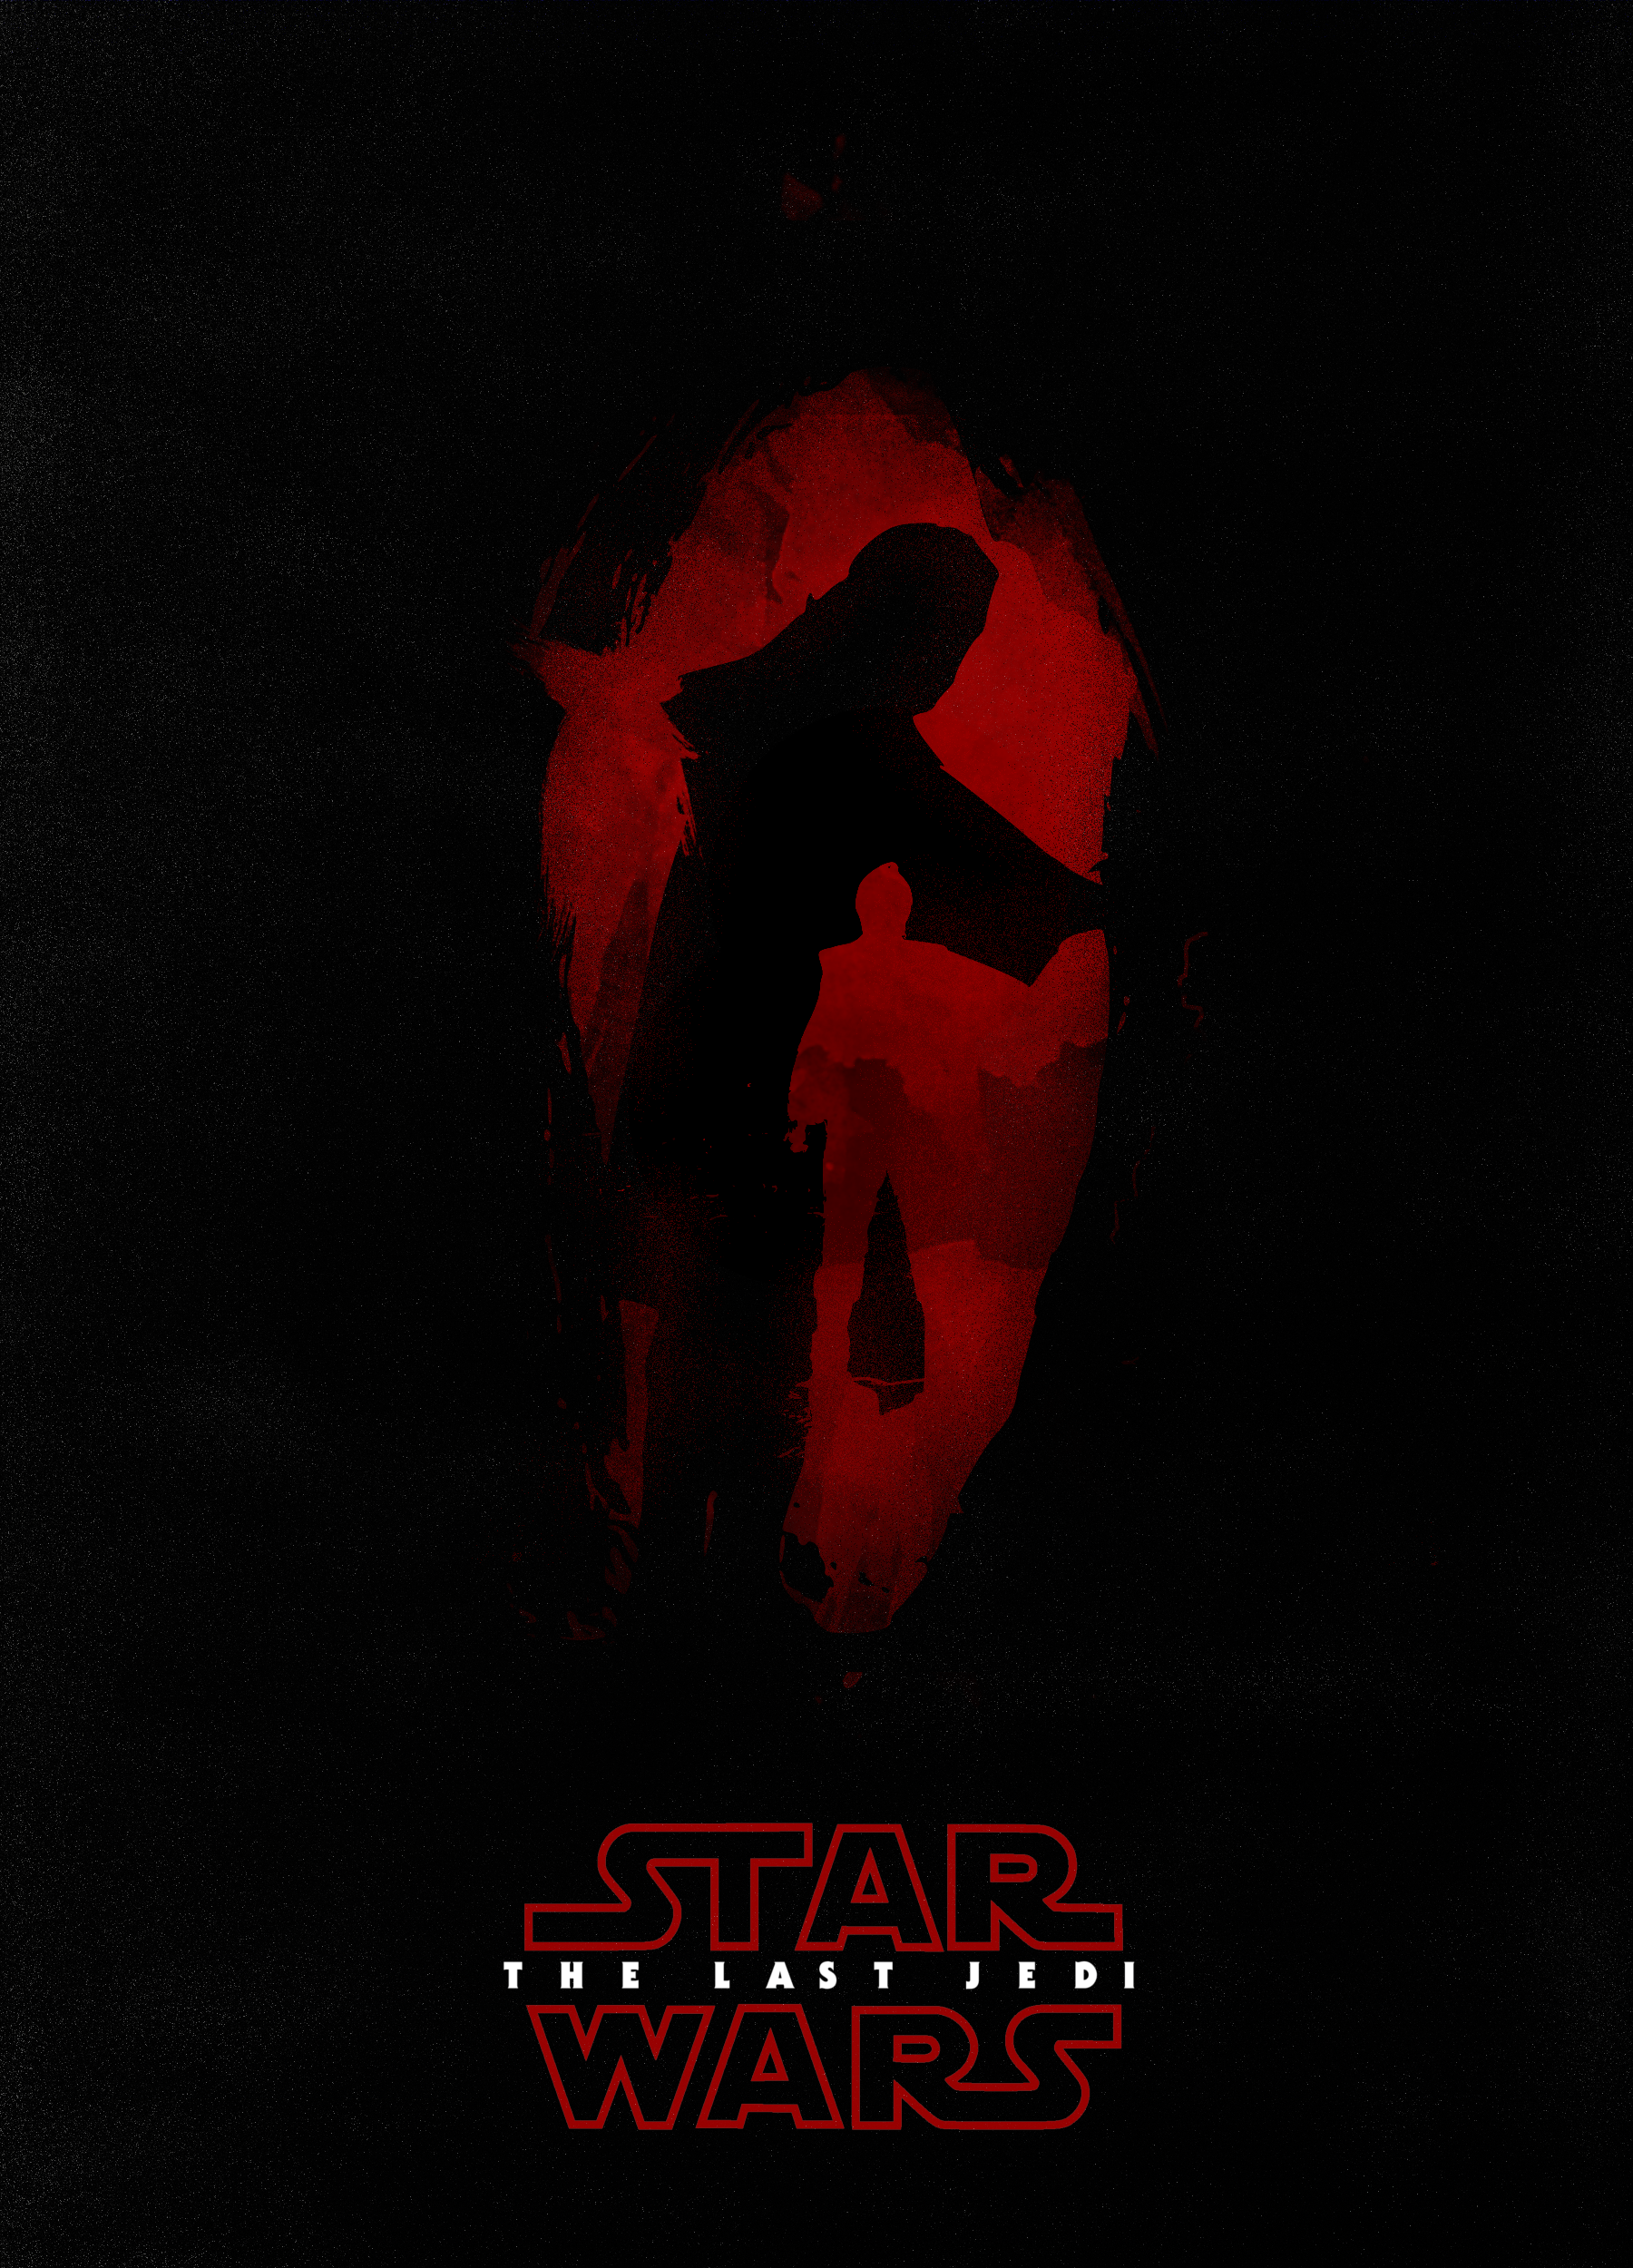 Star Wars The Last Jedi Wallpapers Top Free Star Wars The Last Jedi Backgrounds Wallpaperaccess